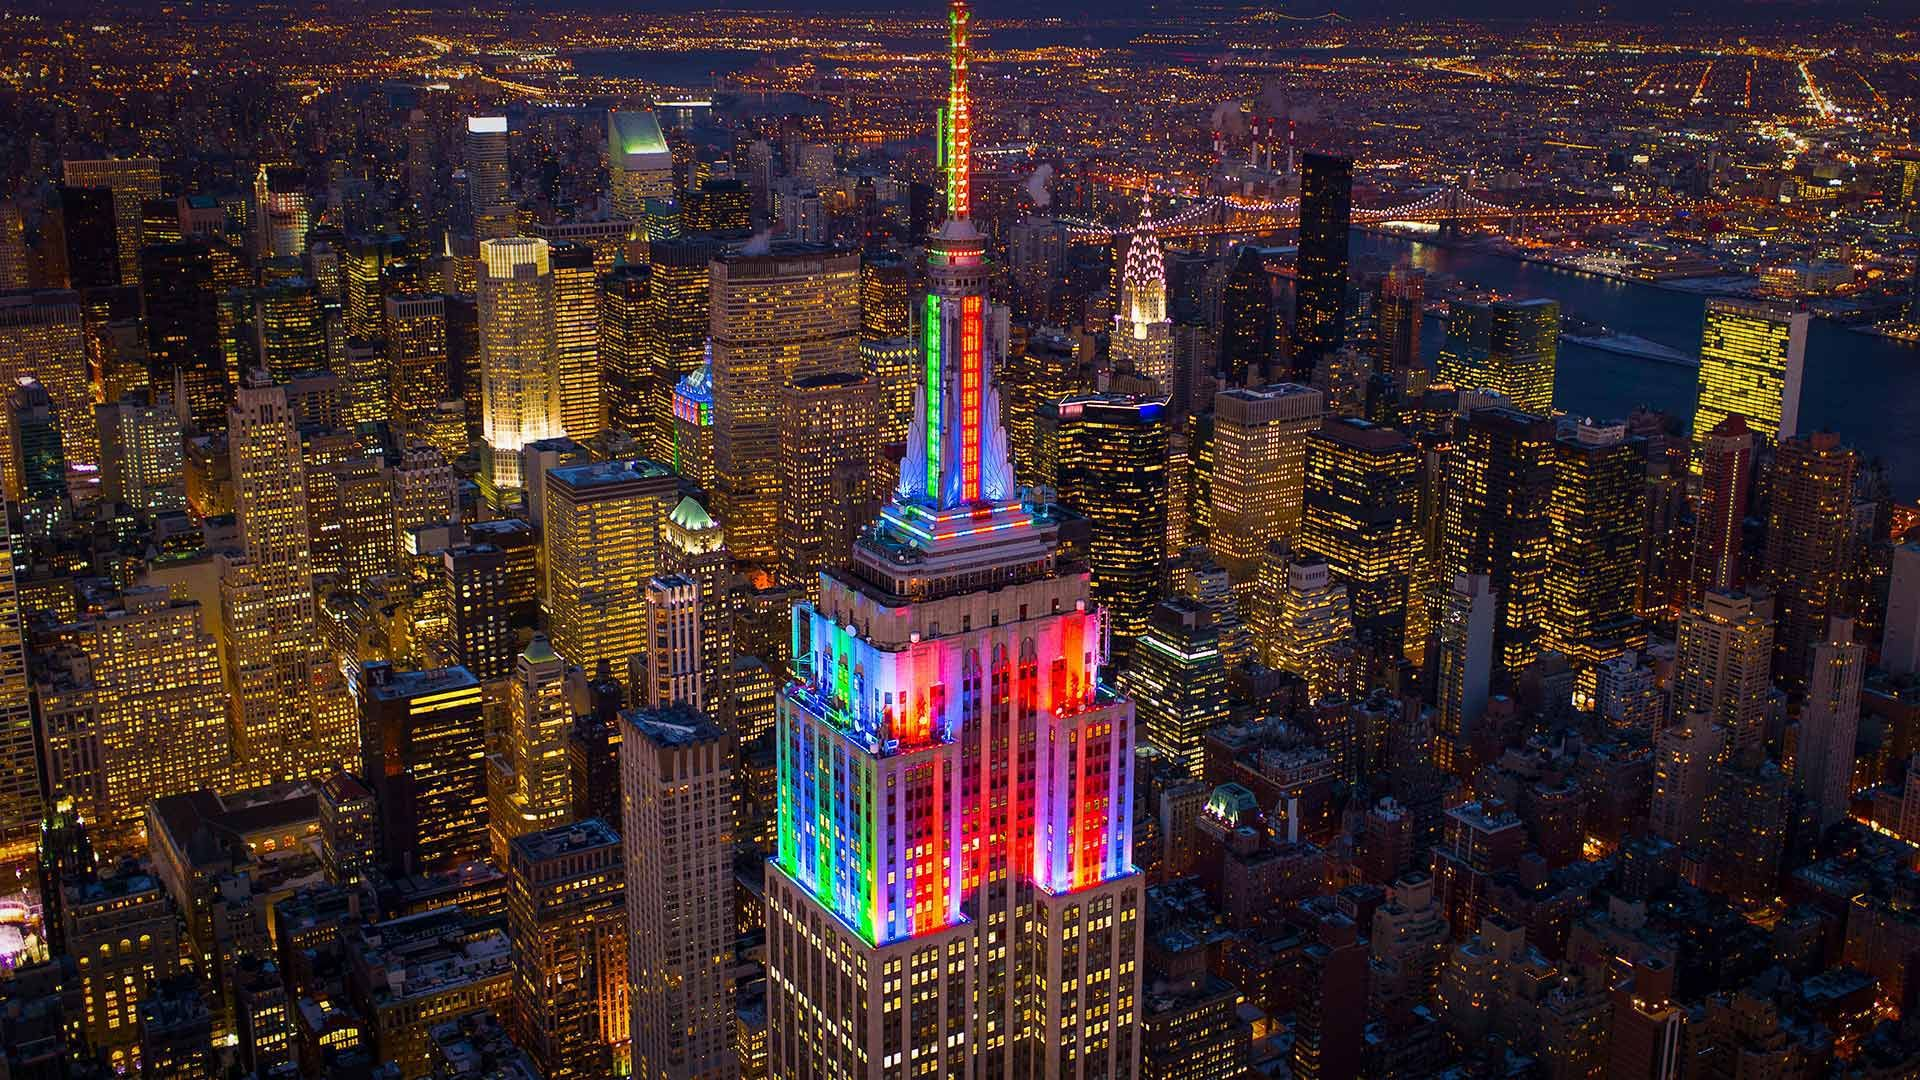 The Empire State Building Lit Up In Honor Of Pride Week In 2014 New York City C C Taylor Crothers Offset By Shutters Empire State Building Empire Pride Week